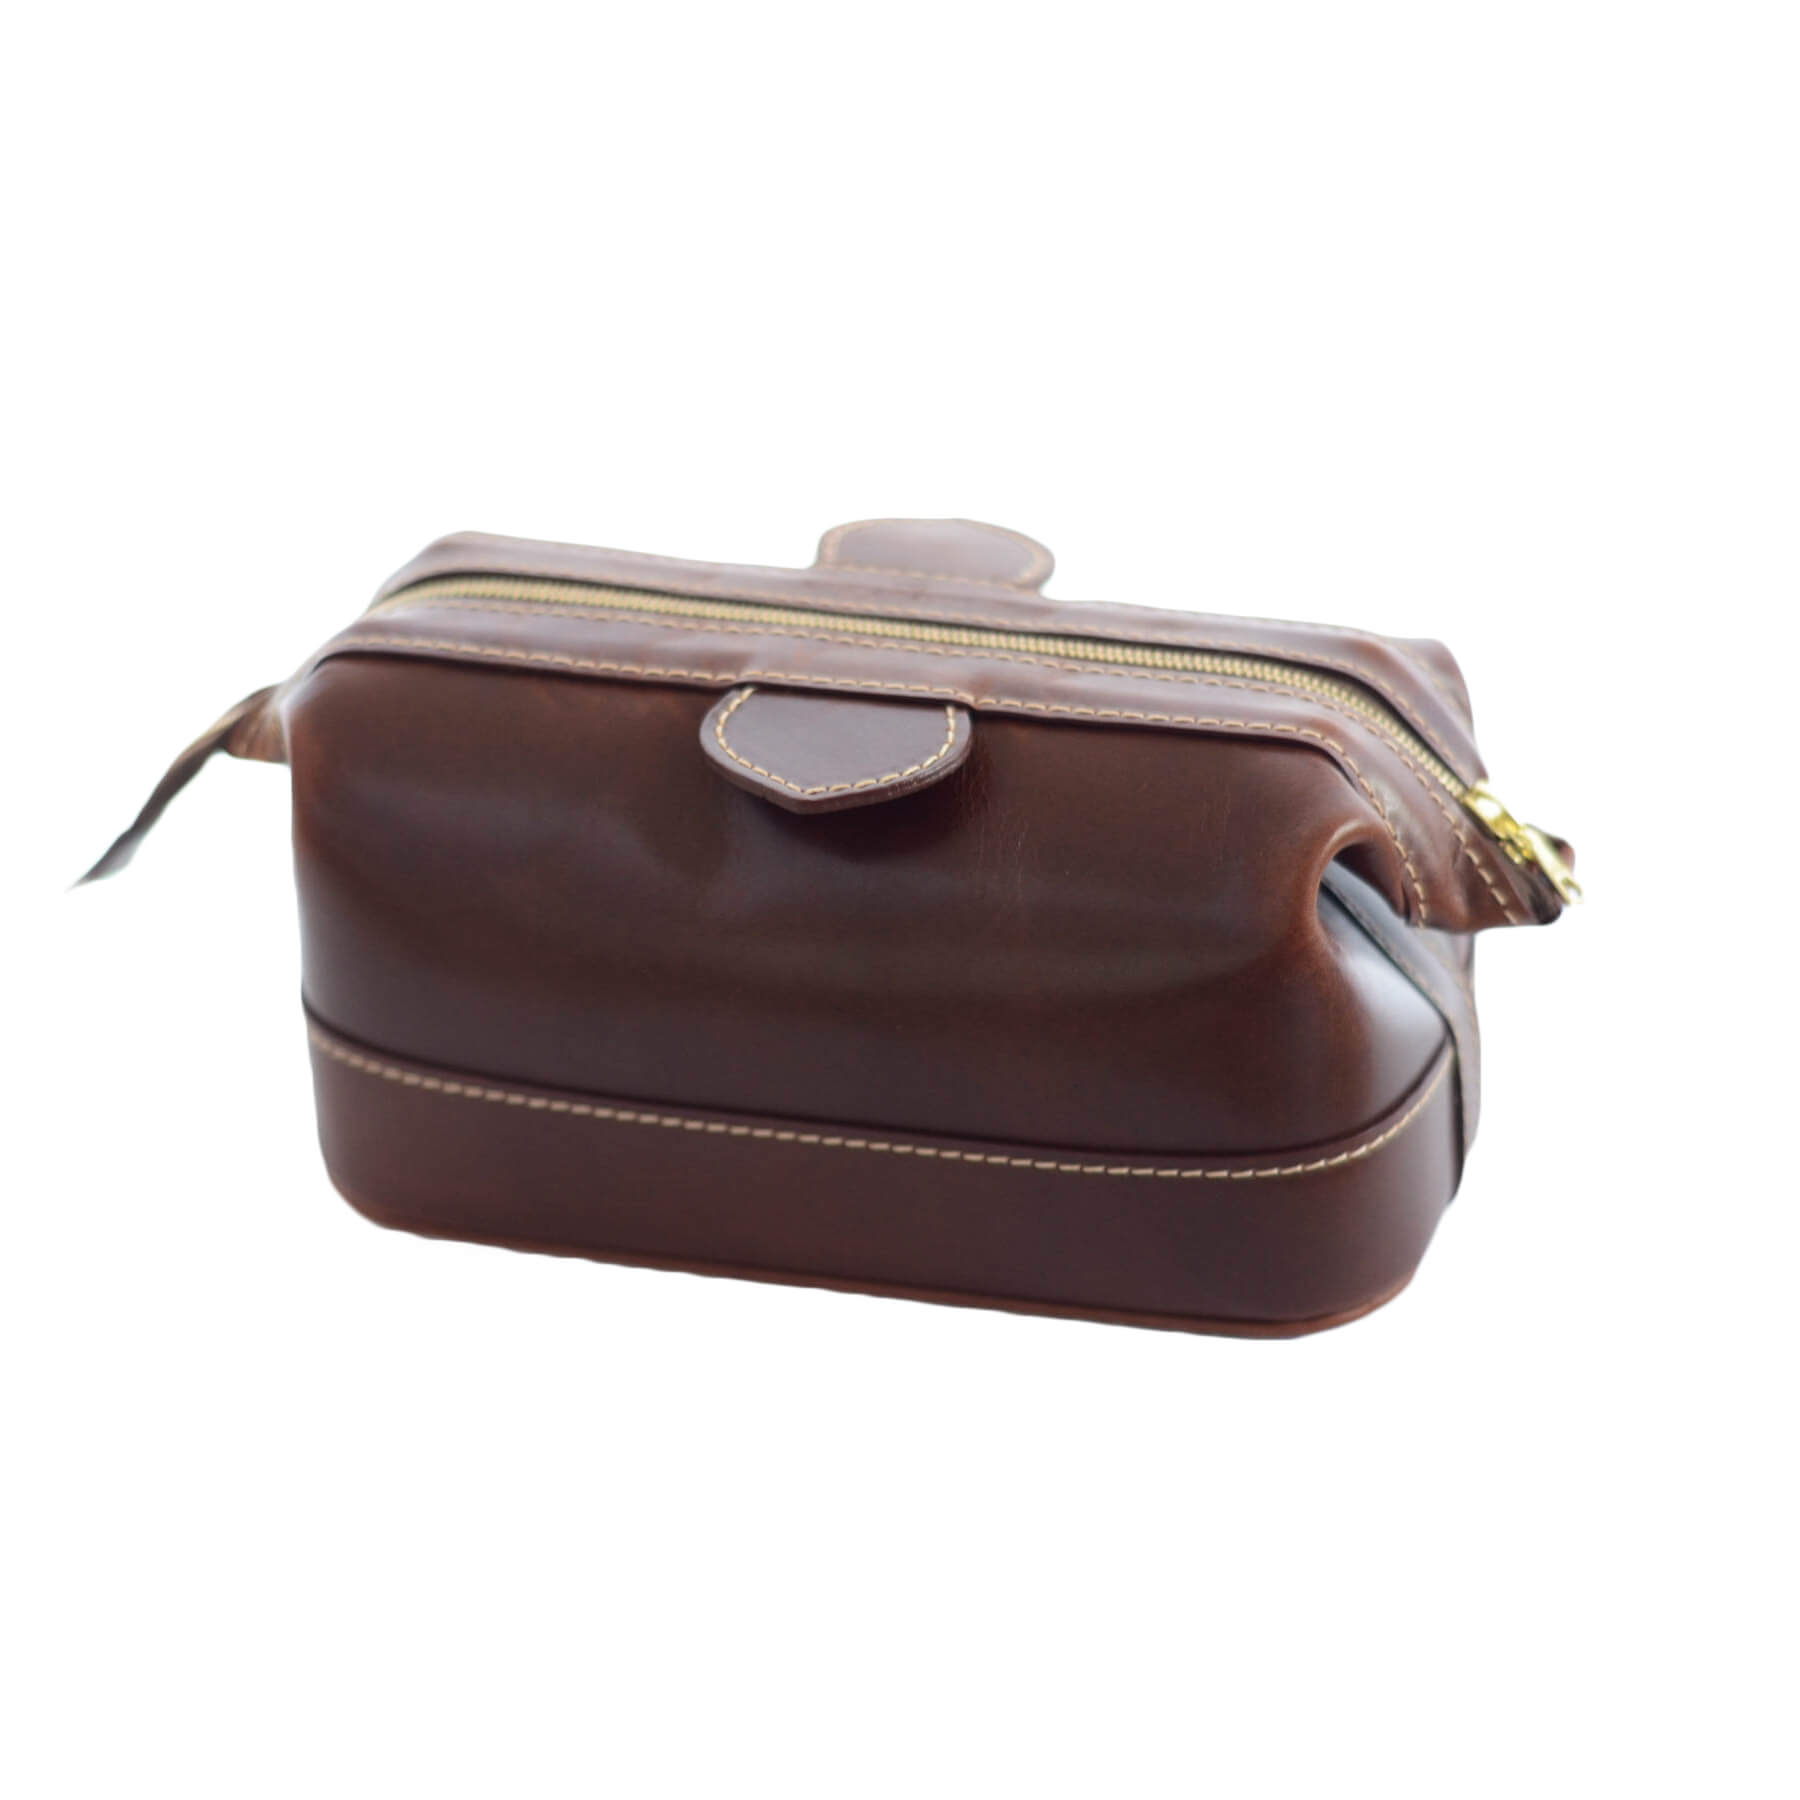 Small Leather Washbag in Brown - Will Bees Bespoke